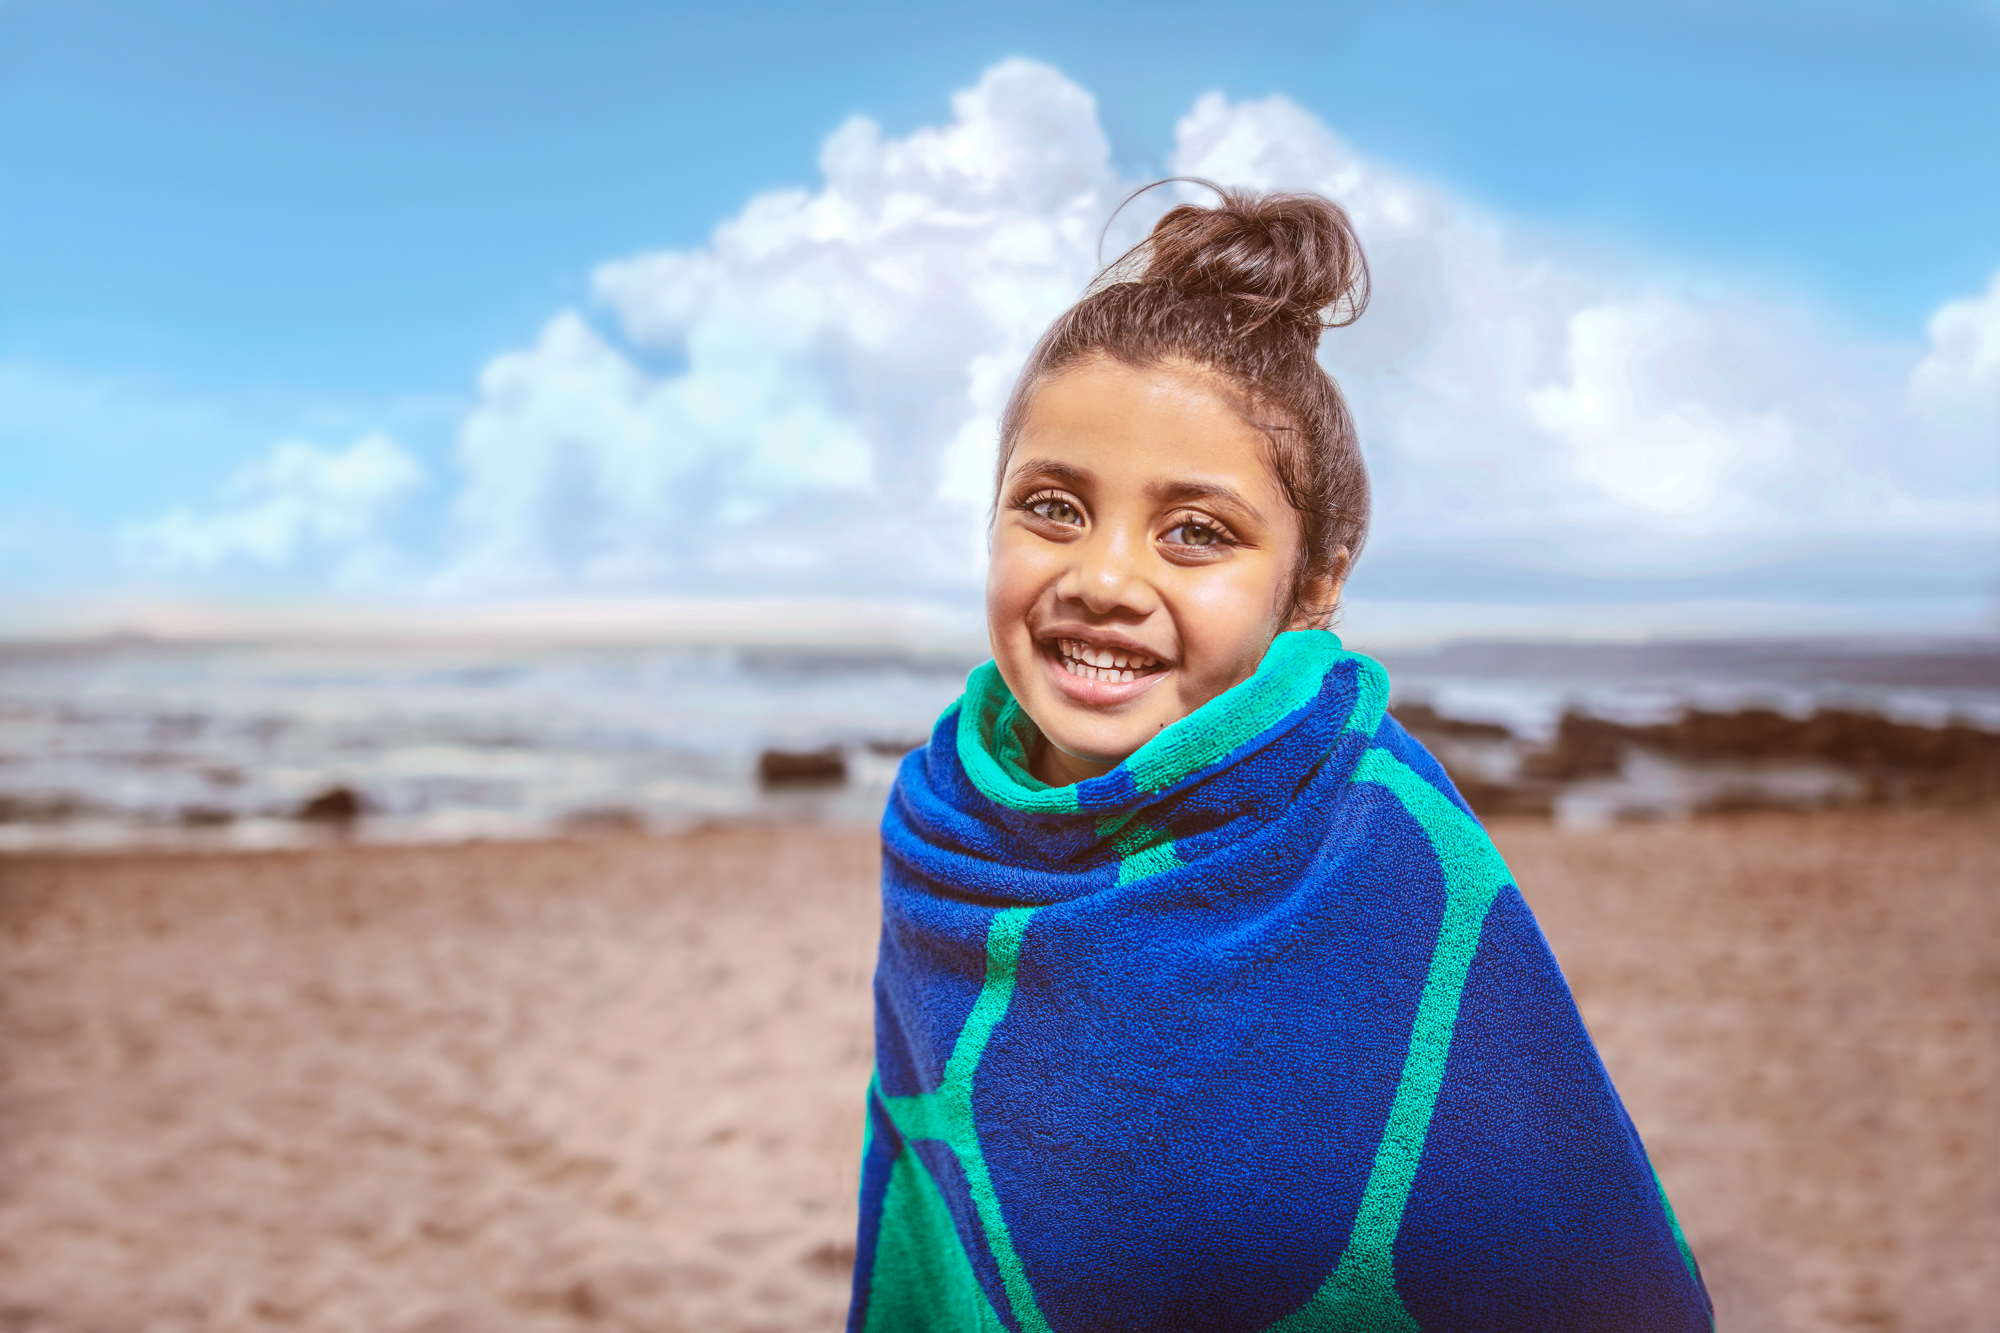 Image of girl on the beach at the Beverly Hills Hotel in uMhlanga Rocks, Durban for  Tsogo Sun's Image Library & Content Library by Michelle Wastie Photography